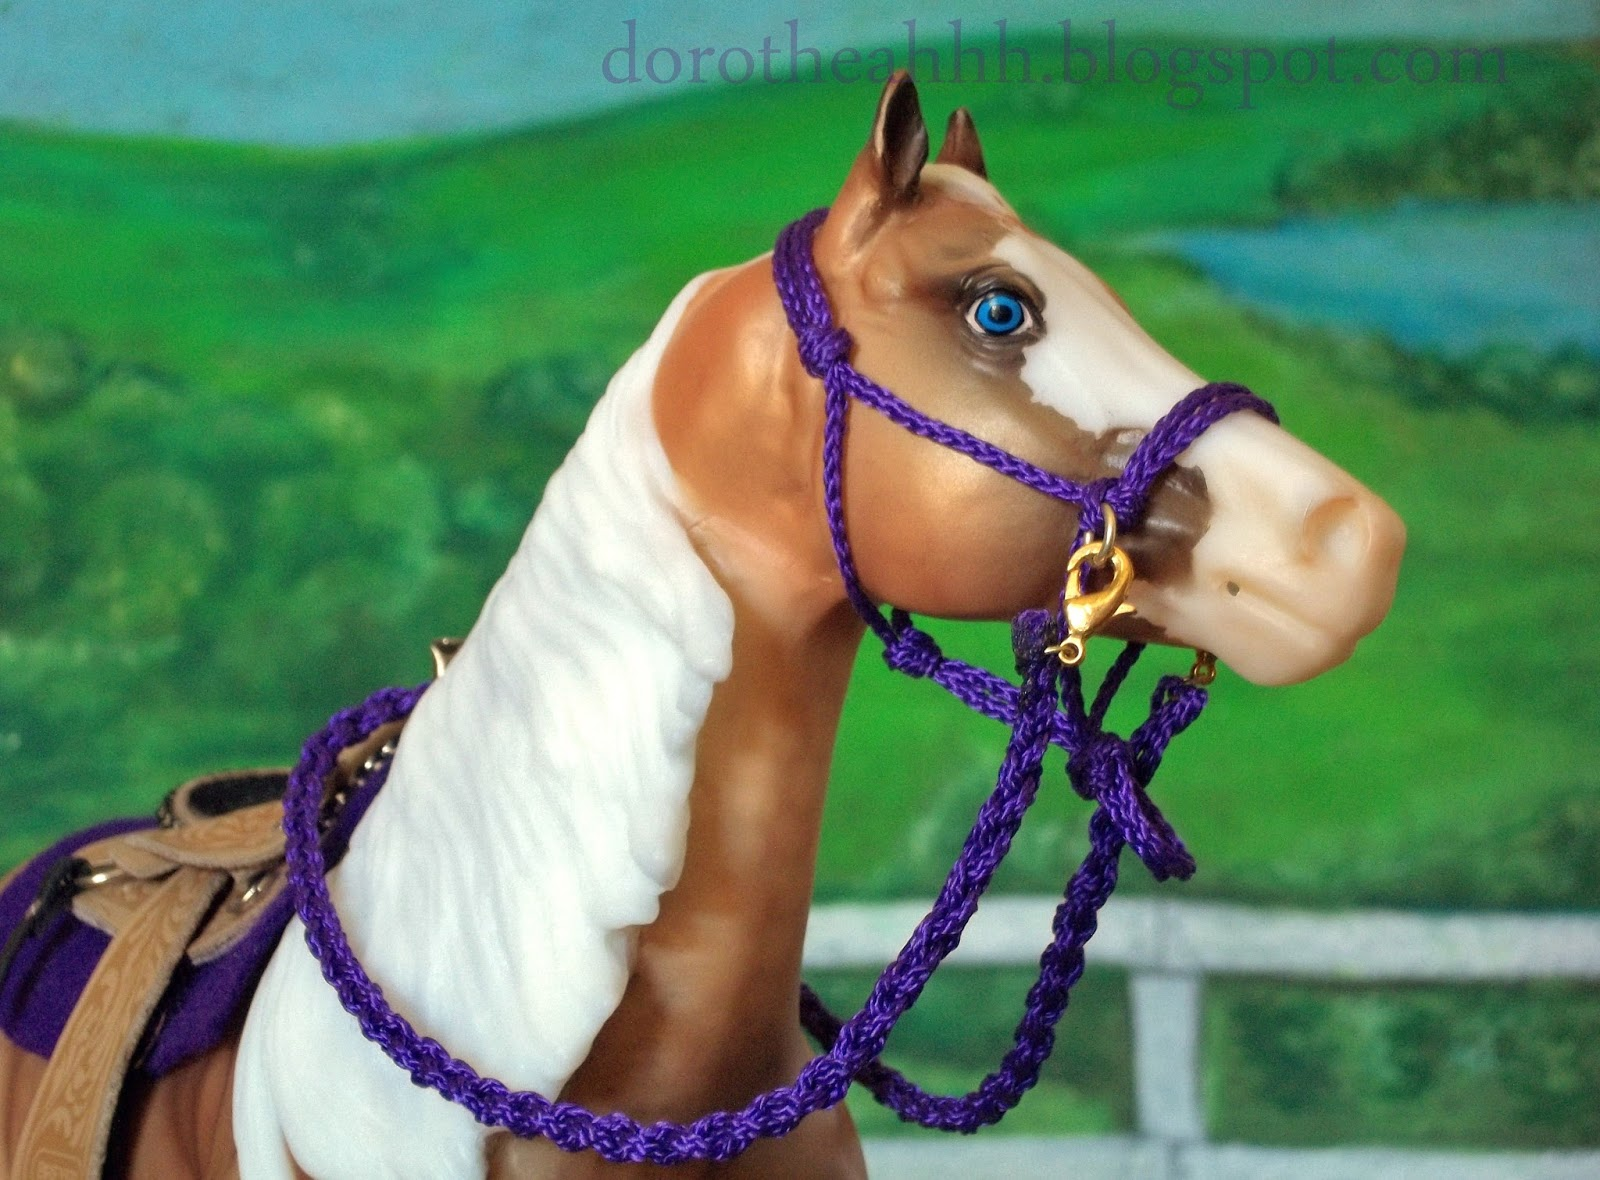 dh stable modelli di cavalli breyer collecta stone modellini breyer traditional big chex to cash 1357 2008 current flashy palomino aqha apha sculpted by susan carlton stiffon smart chic olena introduced